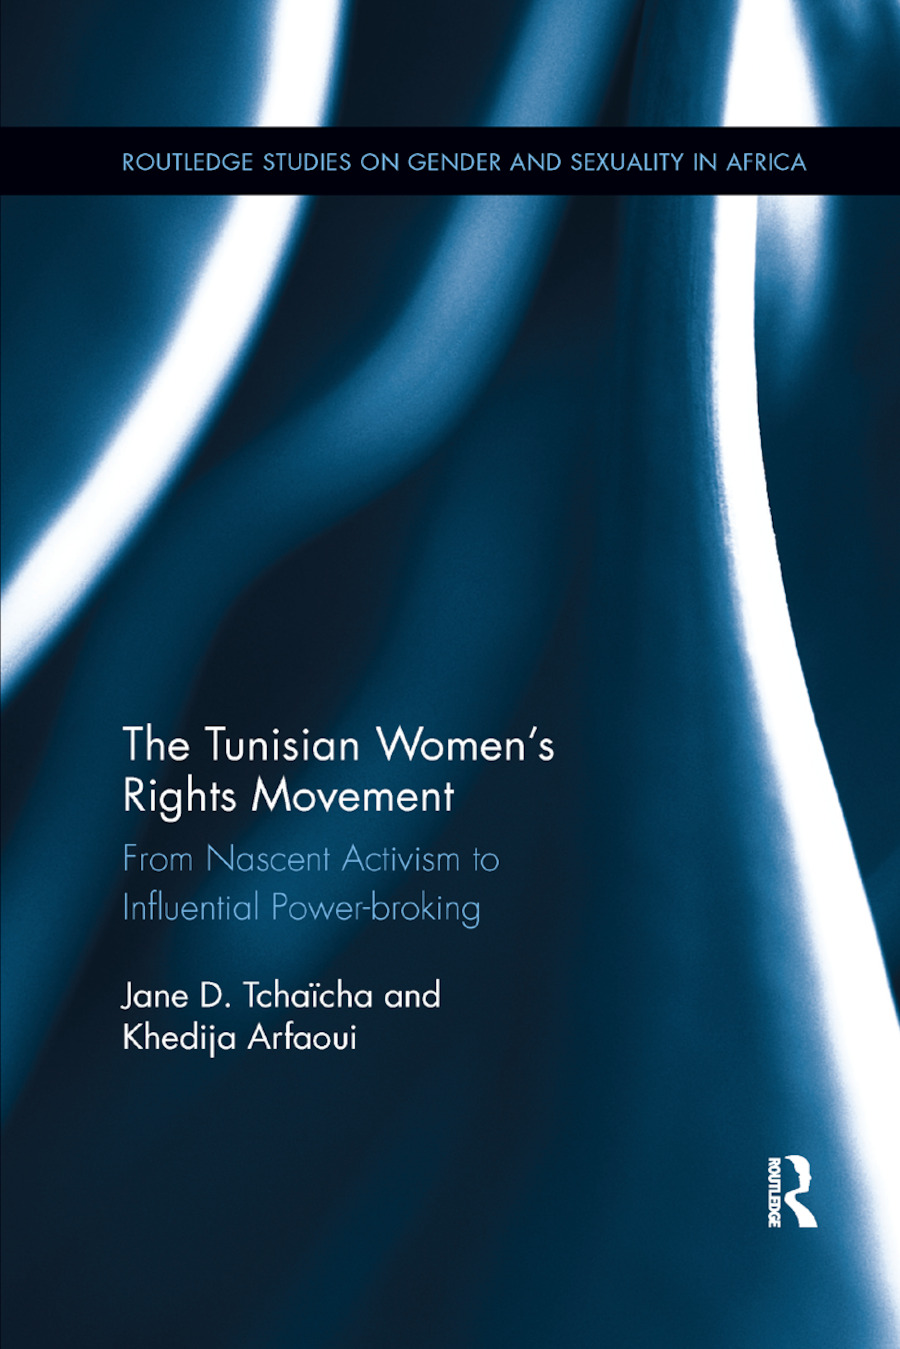 The Tunisian Women�s Rights Movement: From Nascent Activism to Influential Power-broking book cover